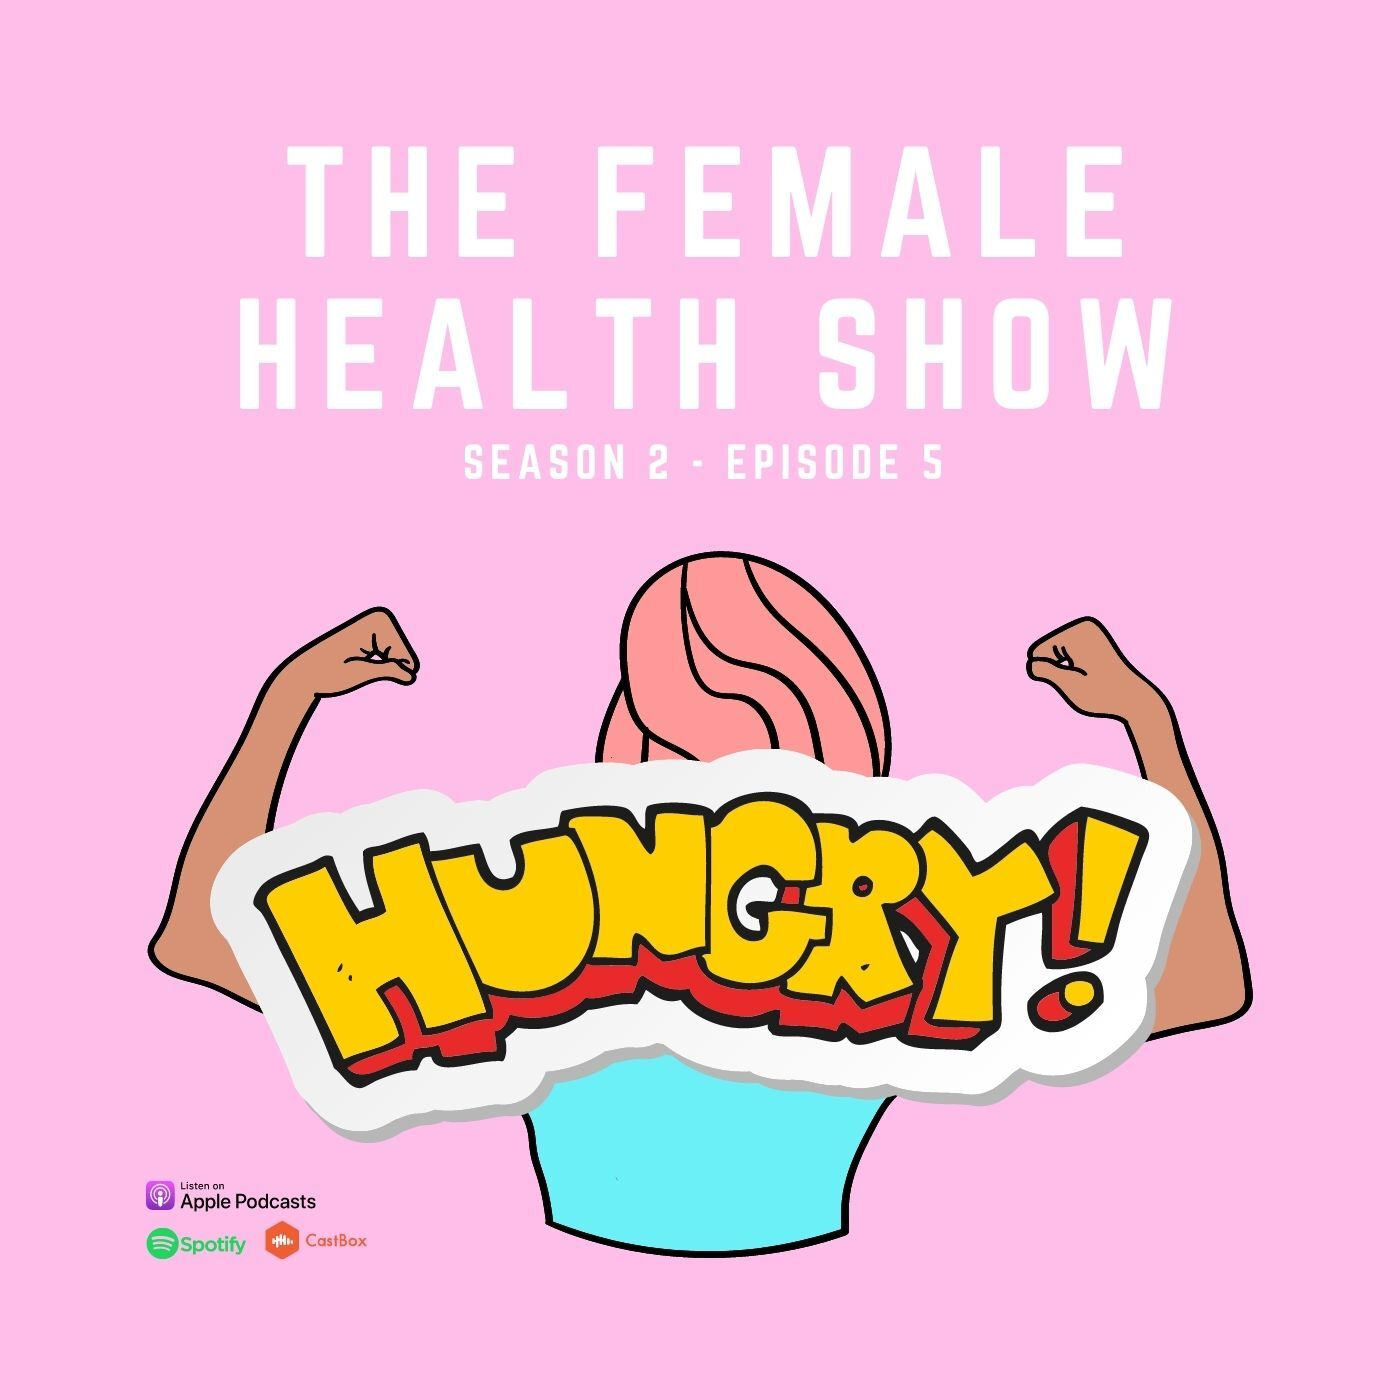 5 - Q&A; What being hungry actually means, how food affects mood, calorie deficits and binge eating.